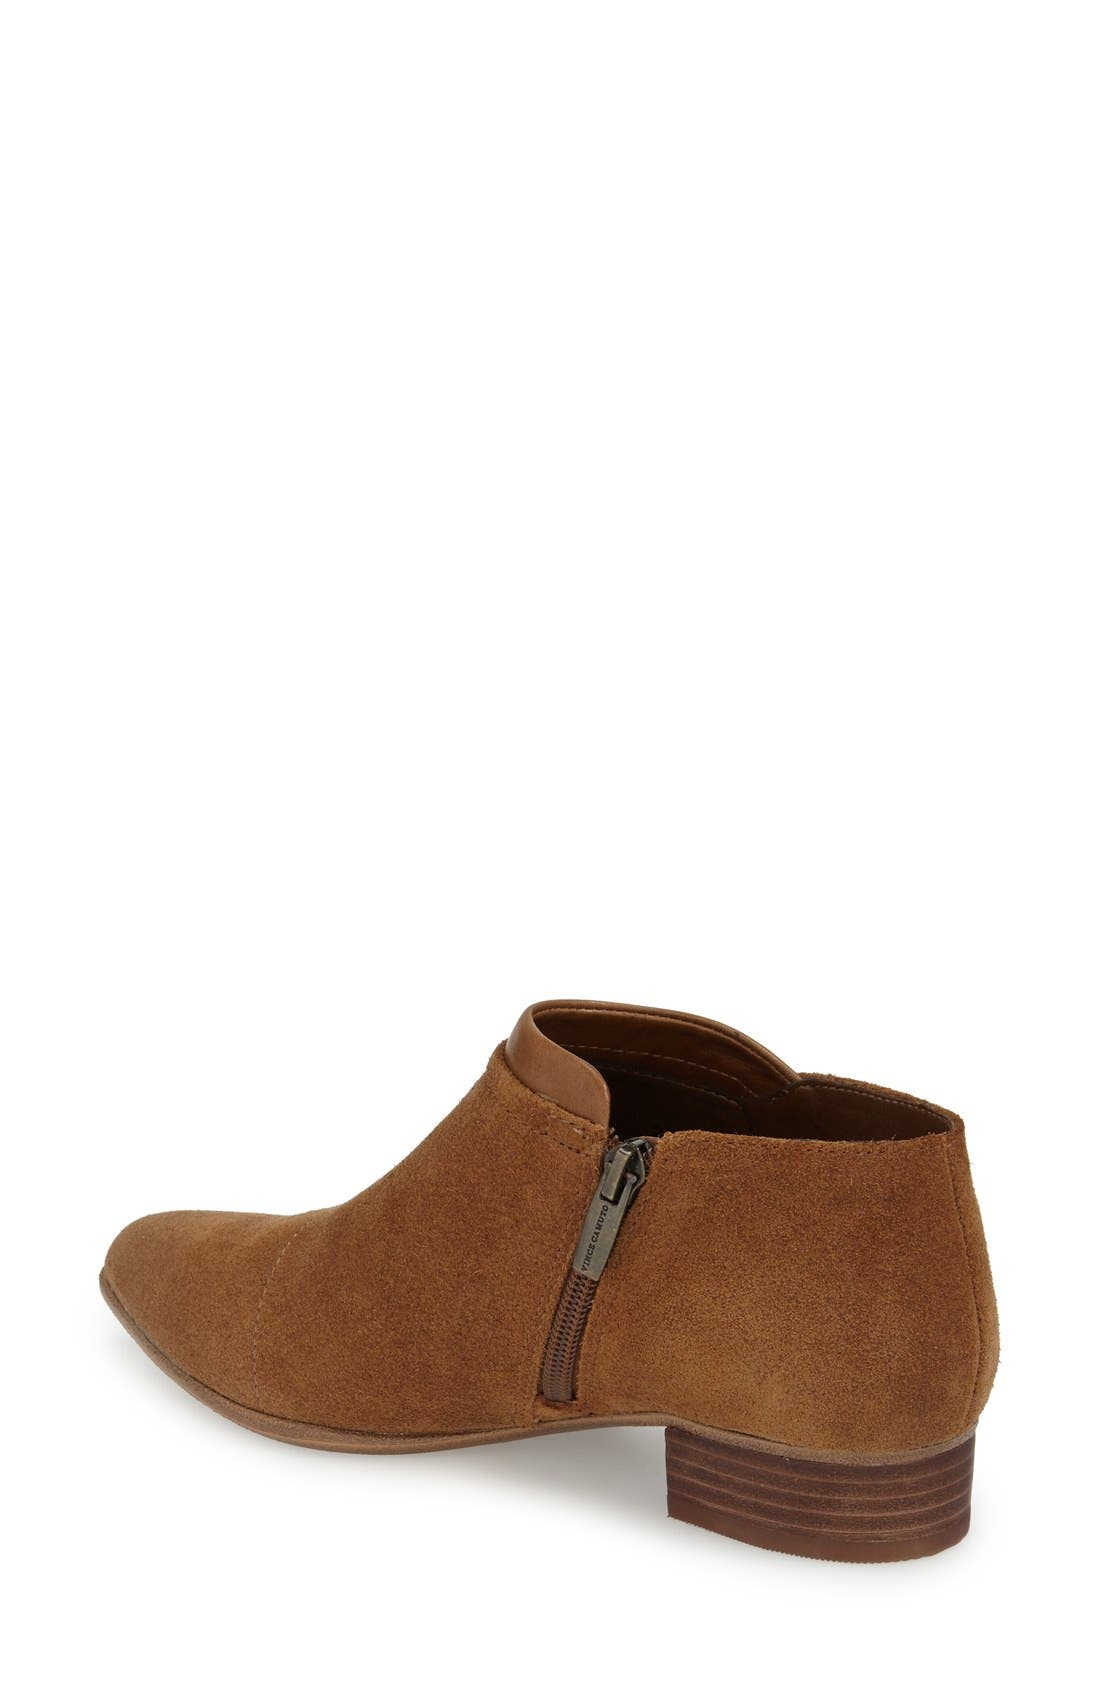 Alternate Image 2  - Vince Camuto 'Jody' Bootie (Women)